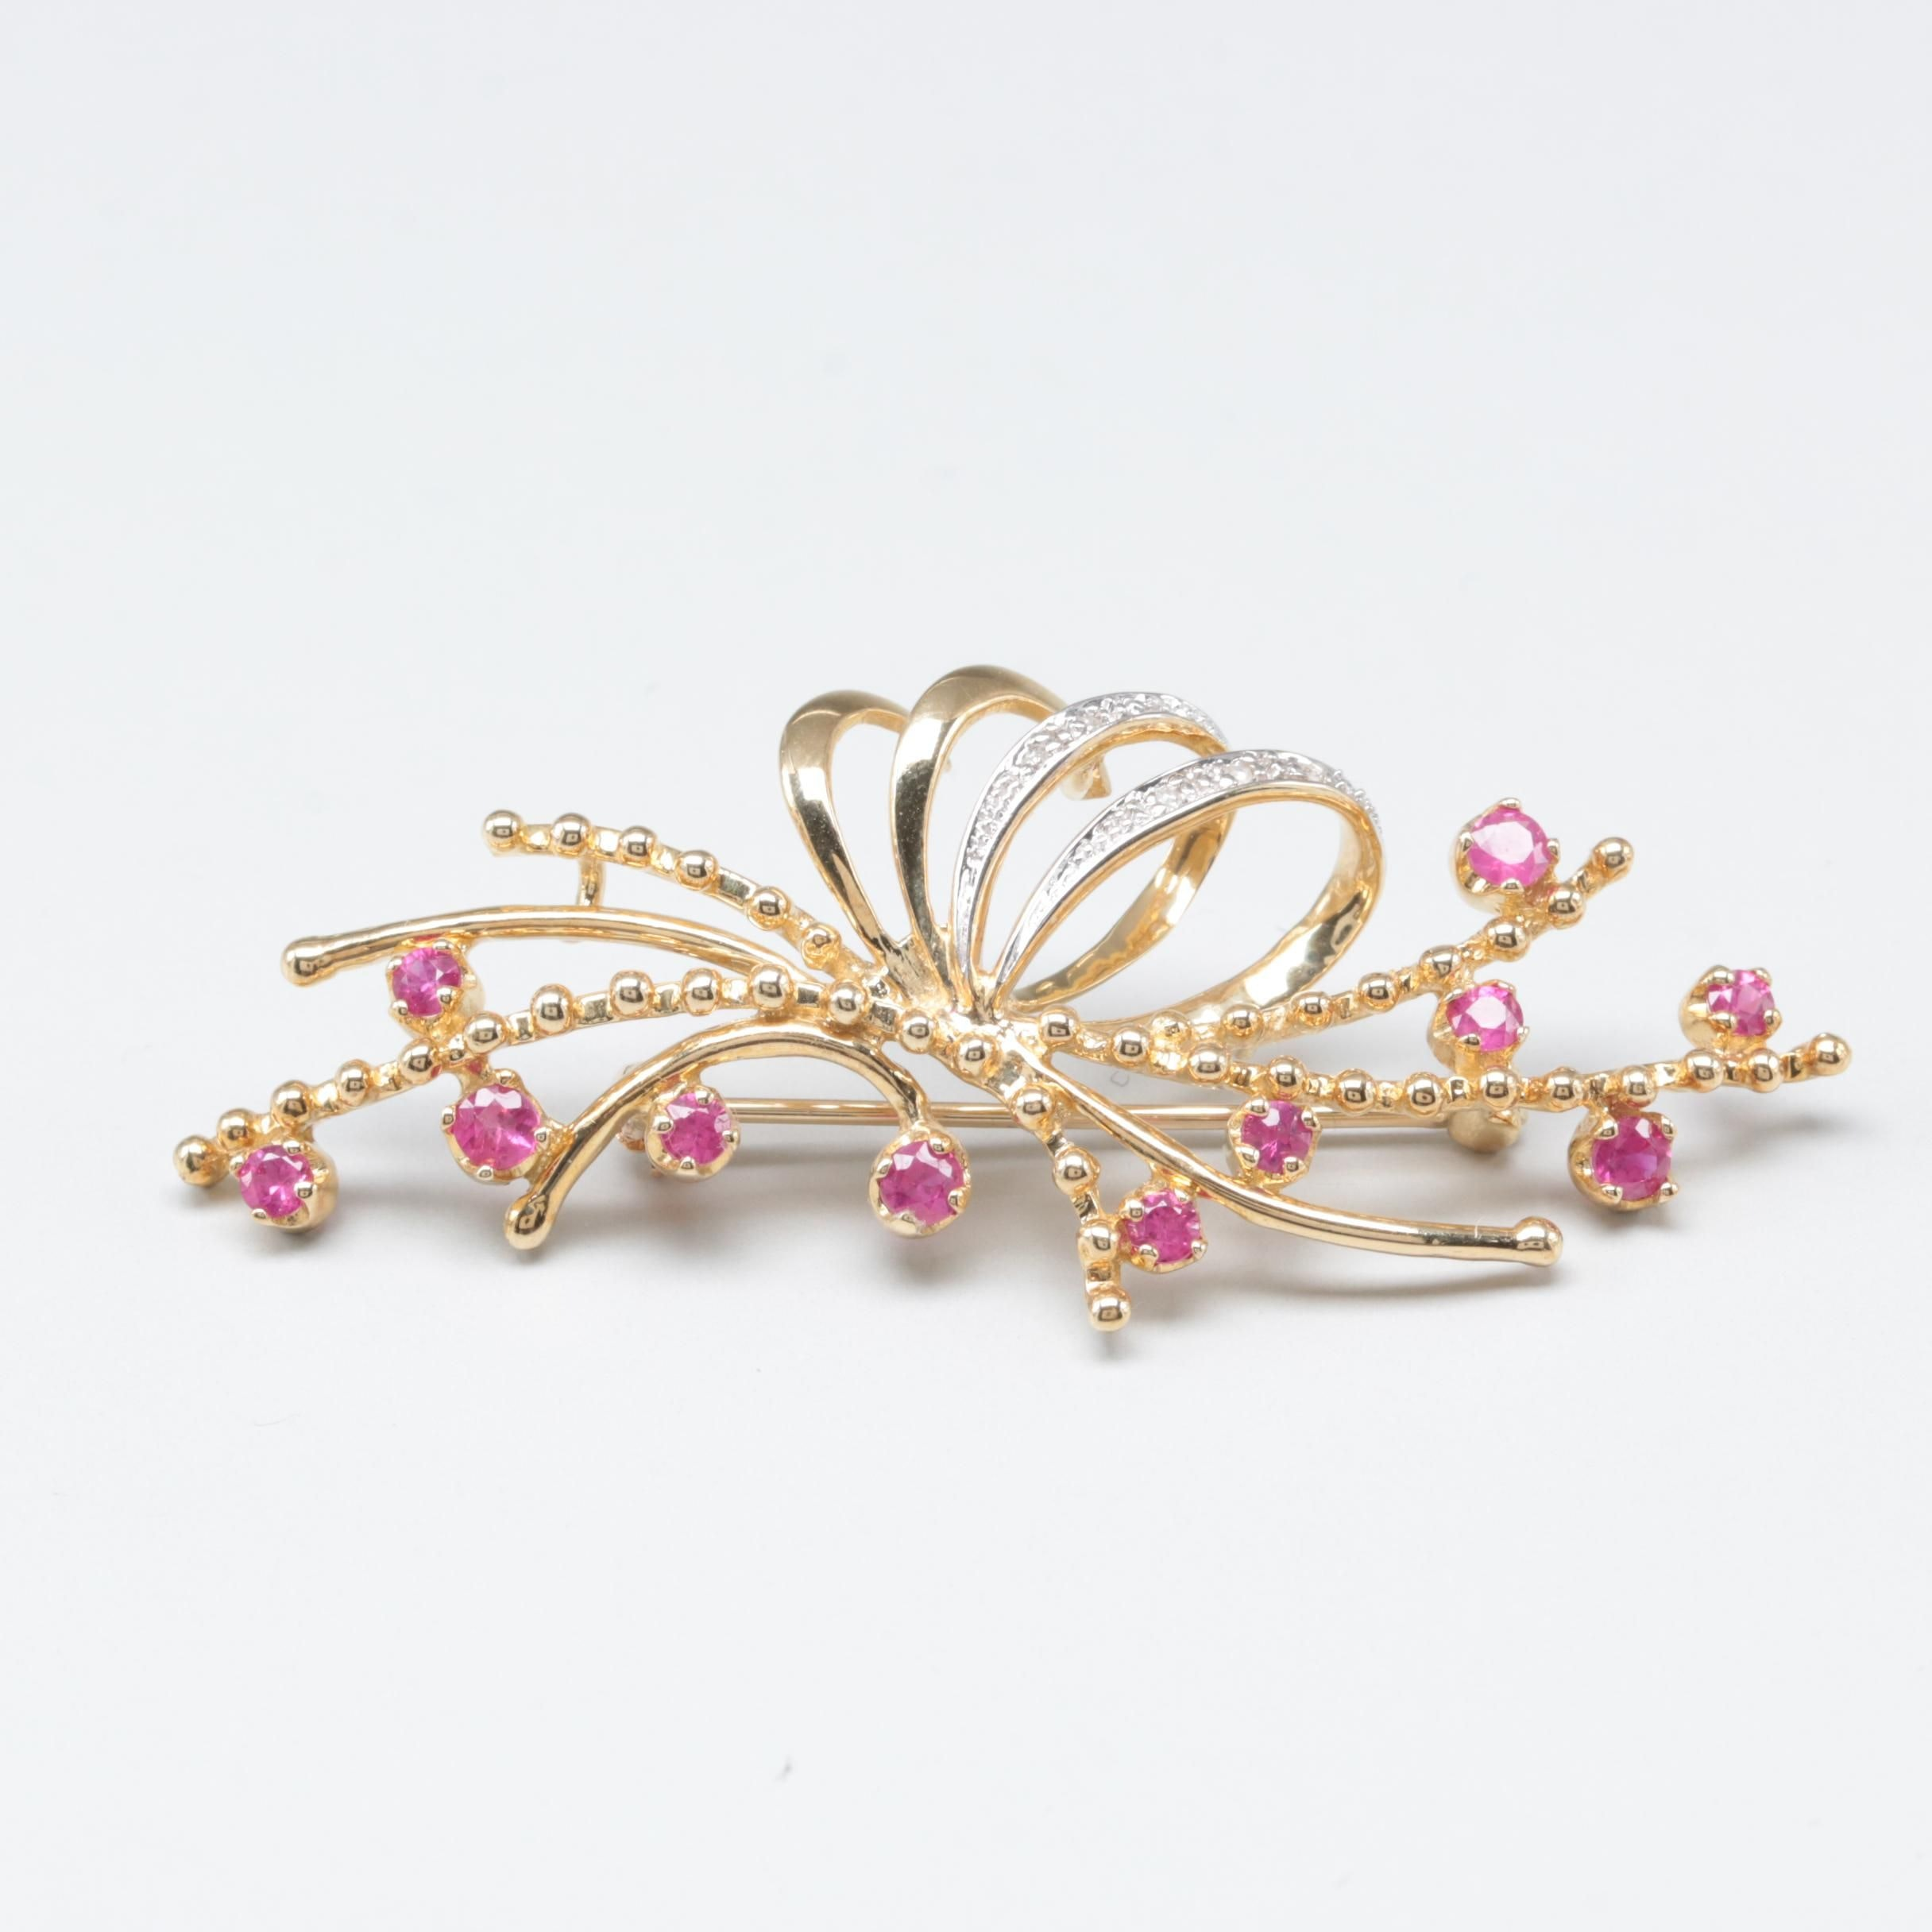 10K Yellow Gold Ruby and Diamond Brooch